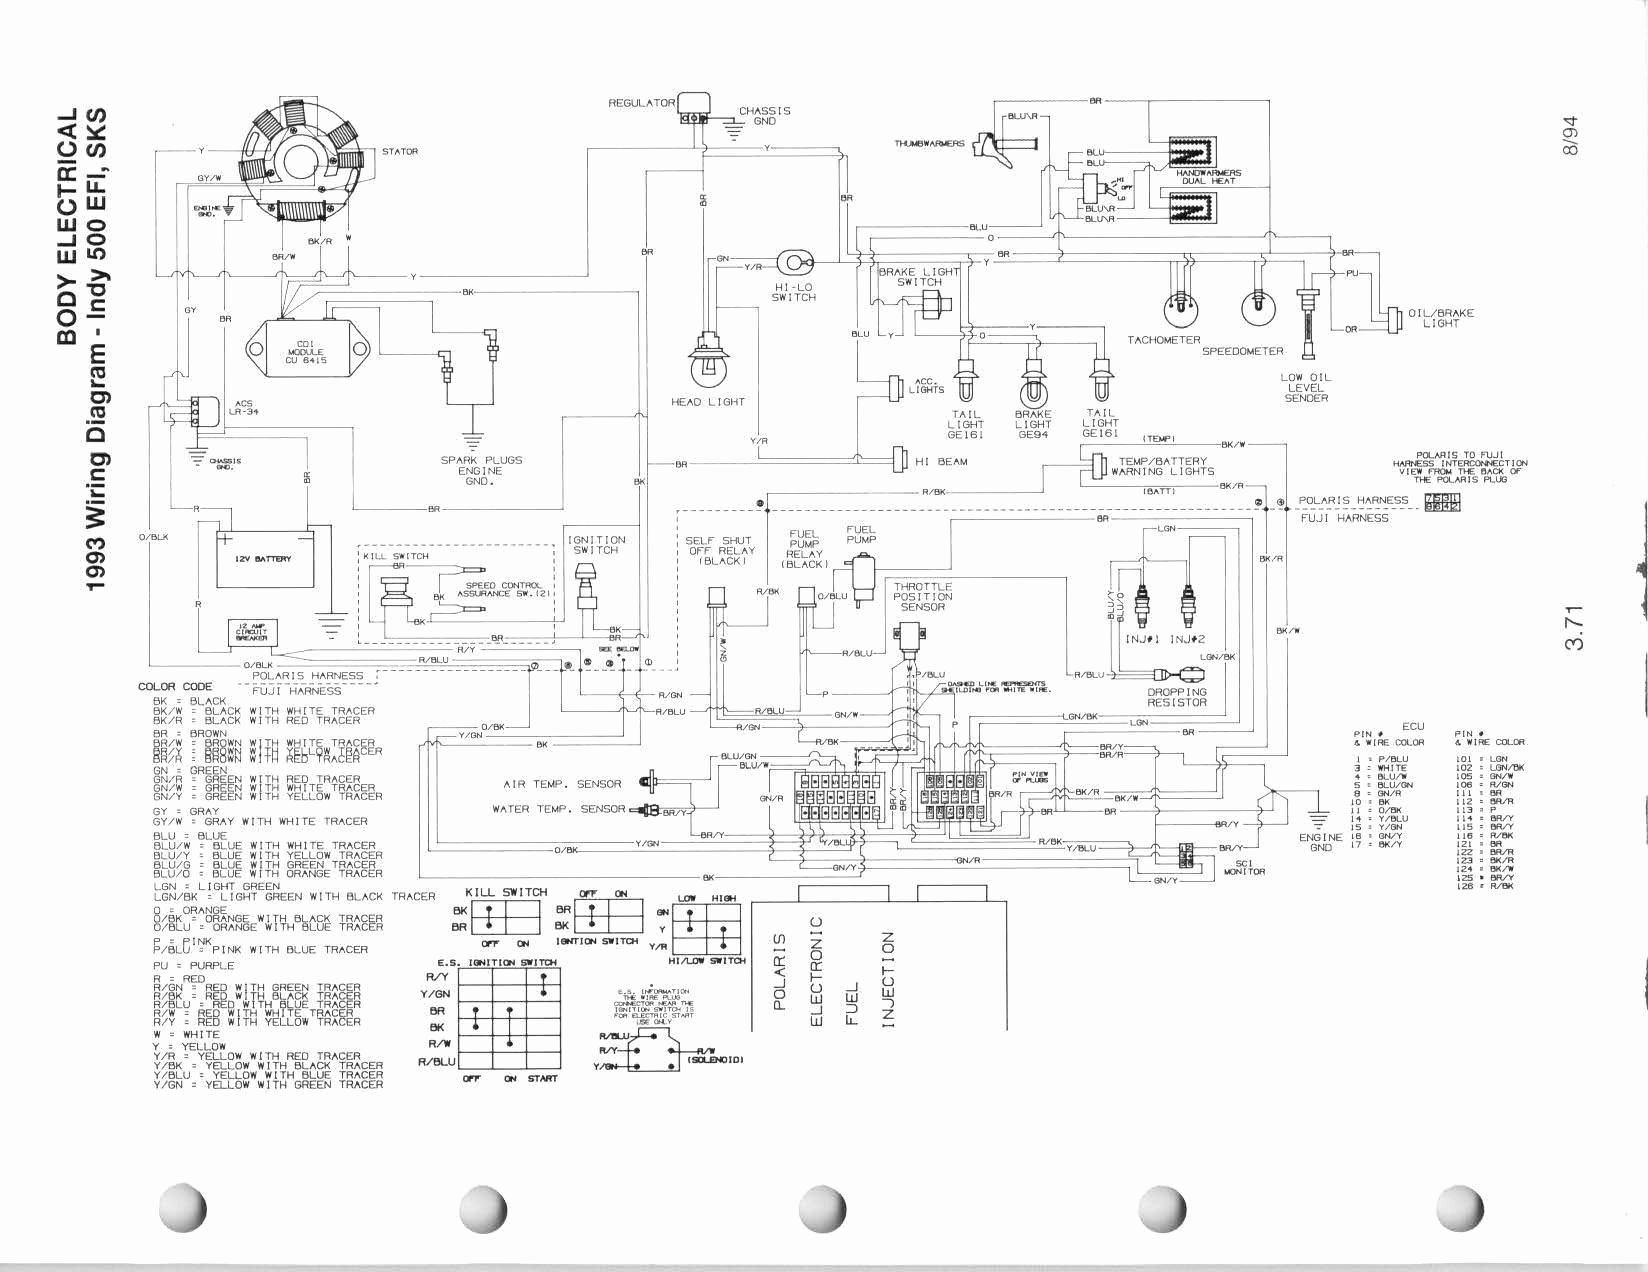 2002 Polari Ranger Wiring Diagram